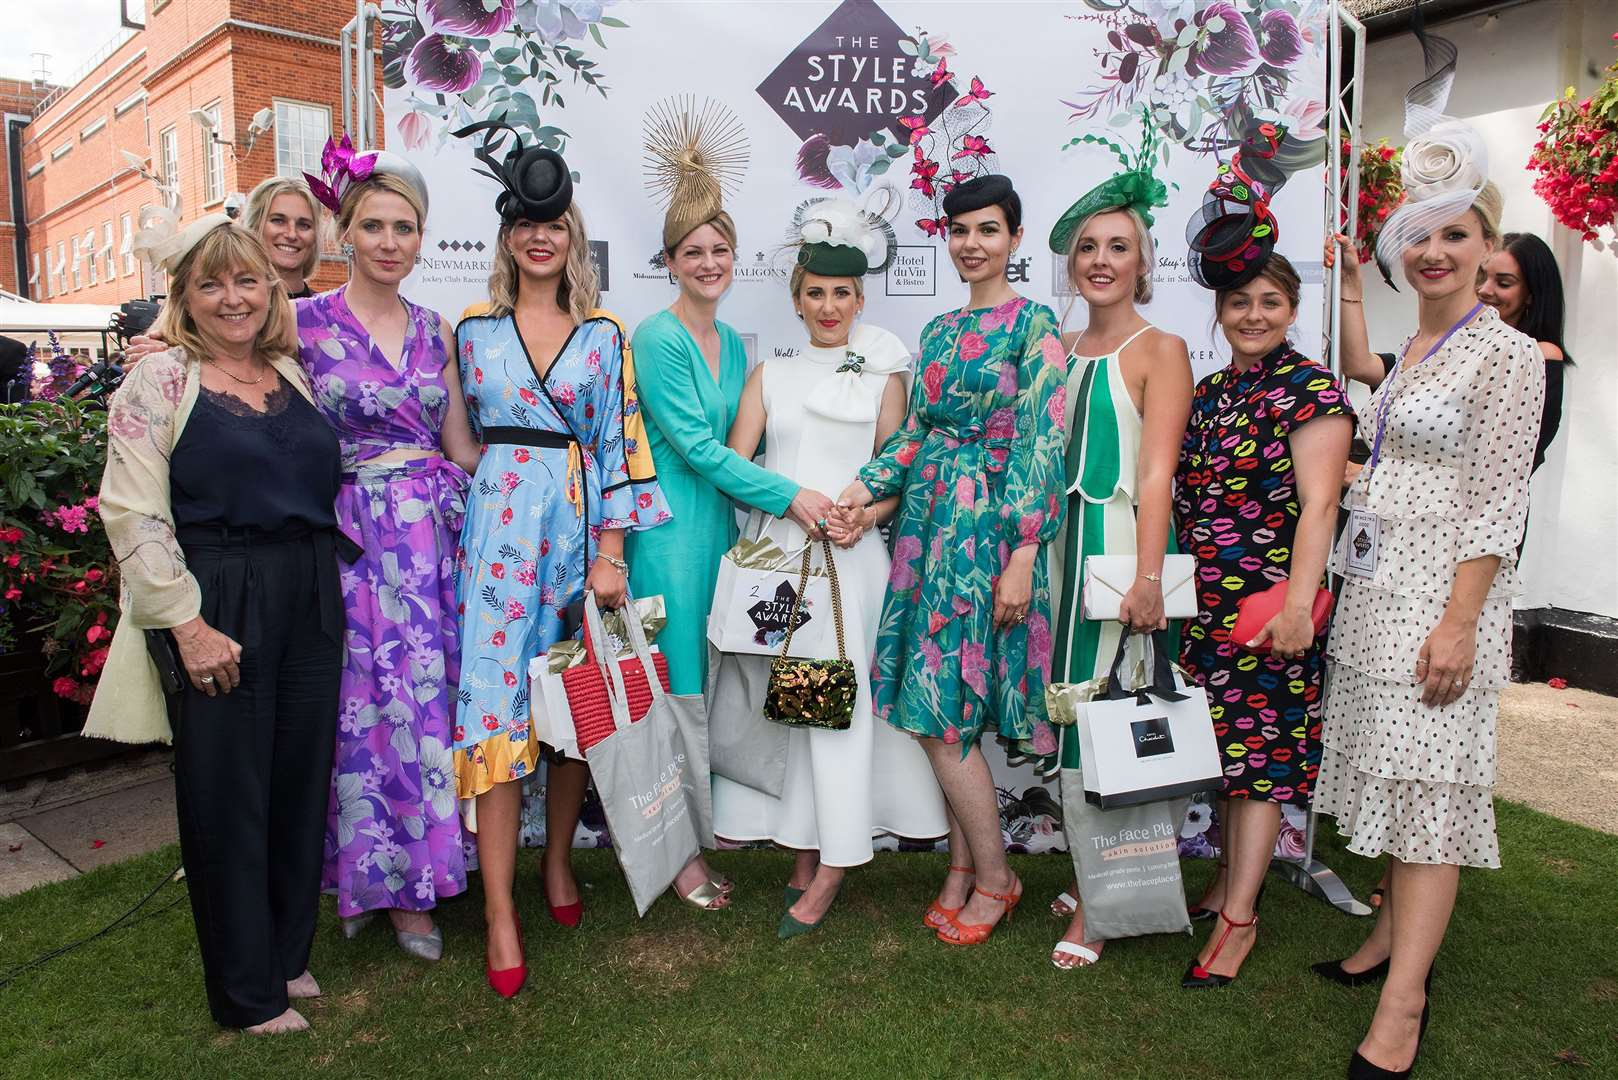 Newmarket July Course Ladies Day 2019Natalie White, of Newmarket, who won Best Dressed Lady at Ladies Day Picture by Mark Westley. (13824170)